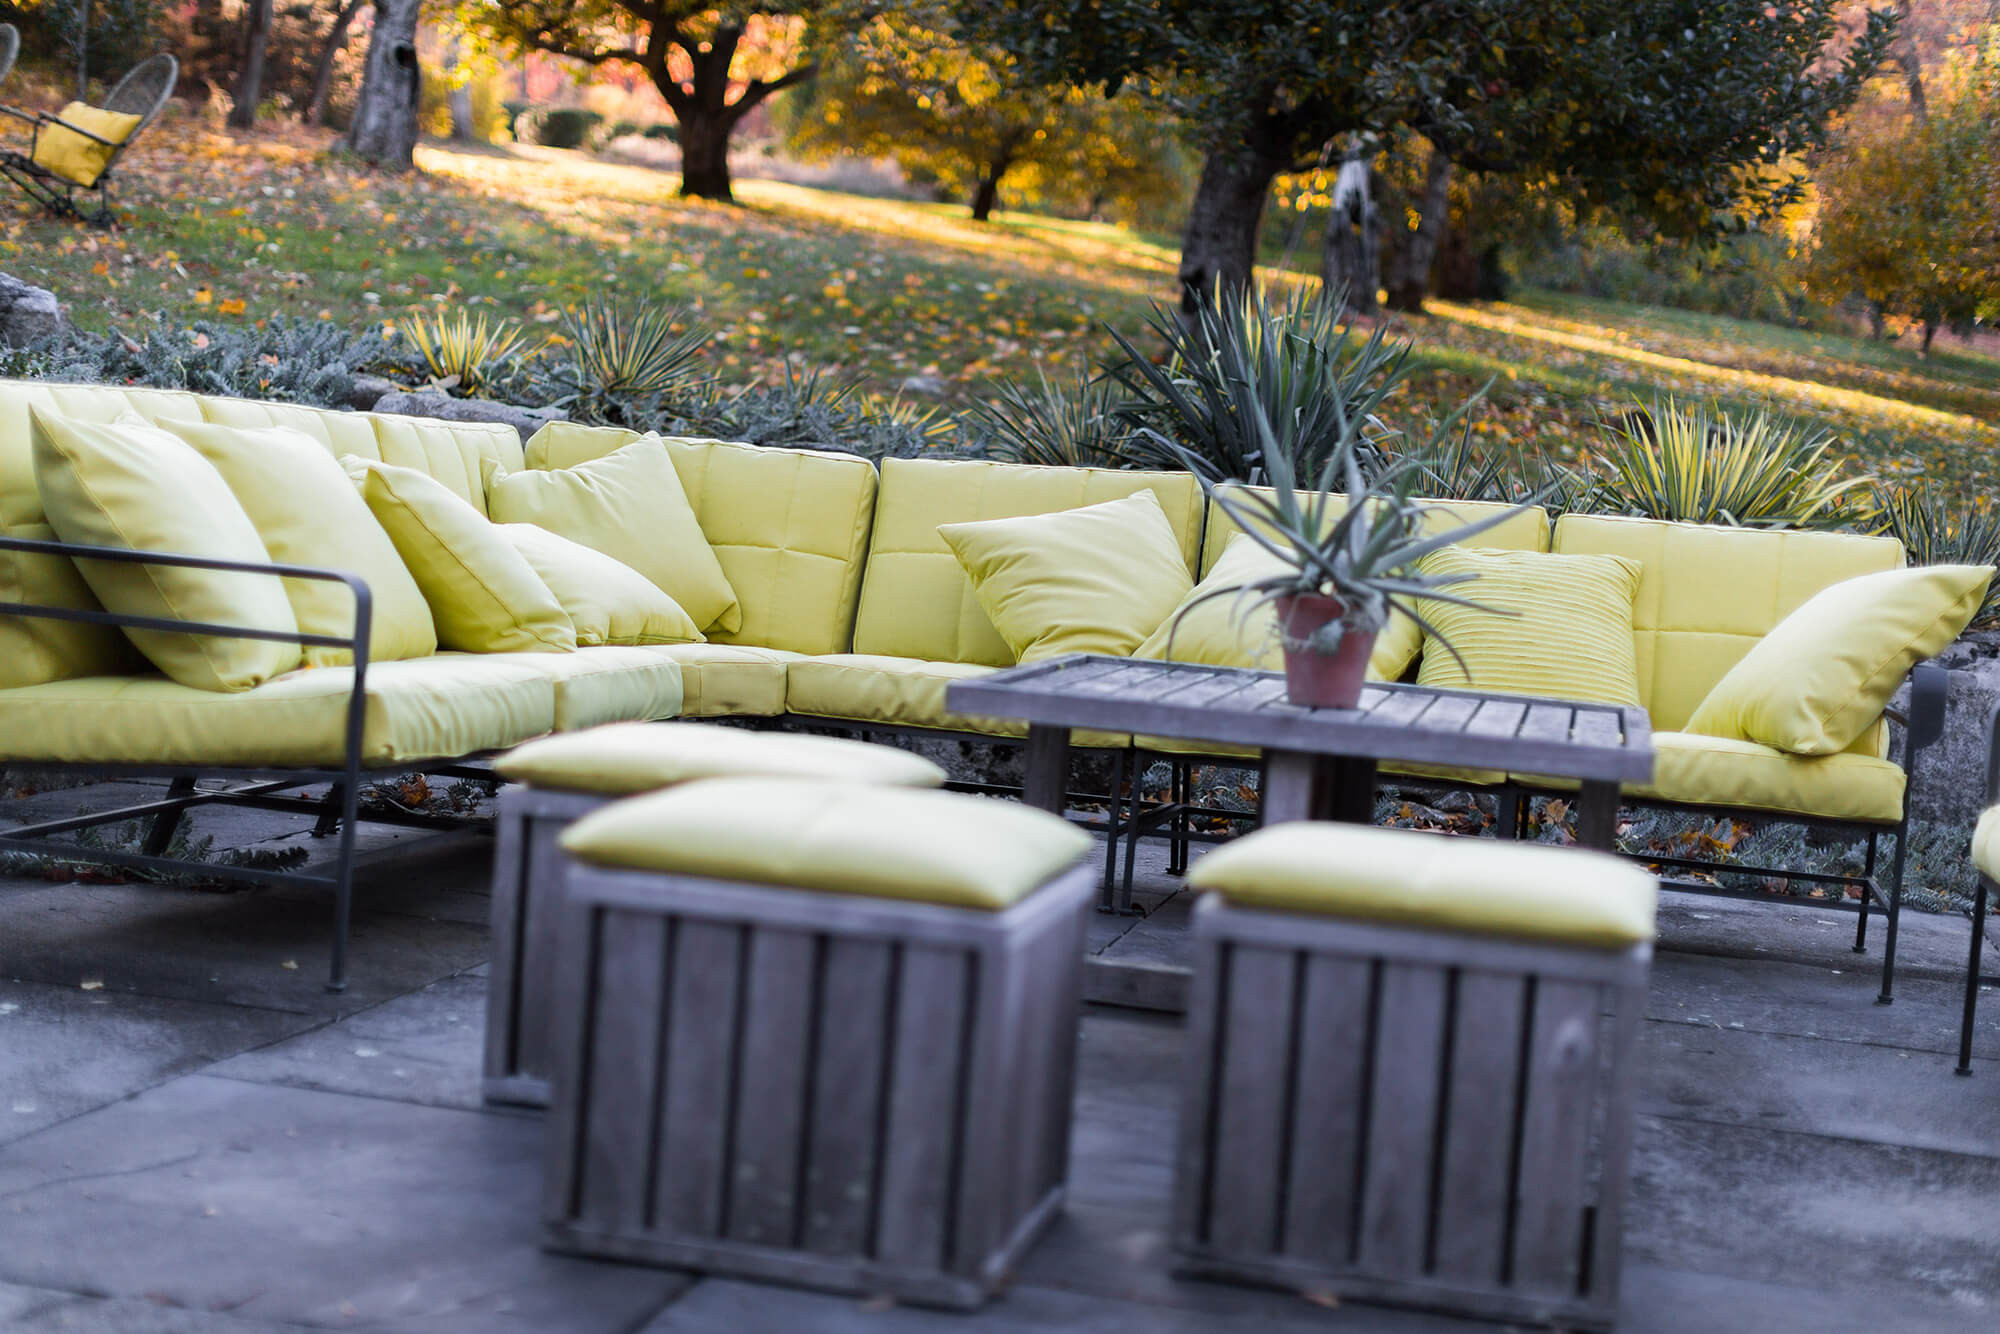 Best ideas about Sunbrella Outdoor Furniture . Save or Pin Fabrics for the Home Indoor & Outdoor Fabrics Now.